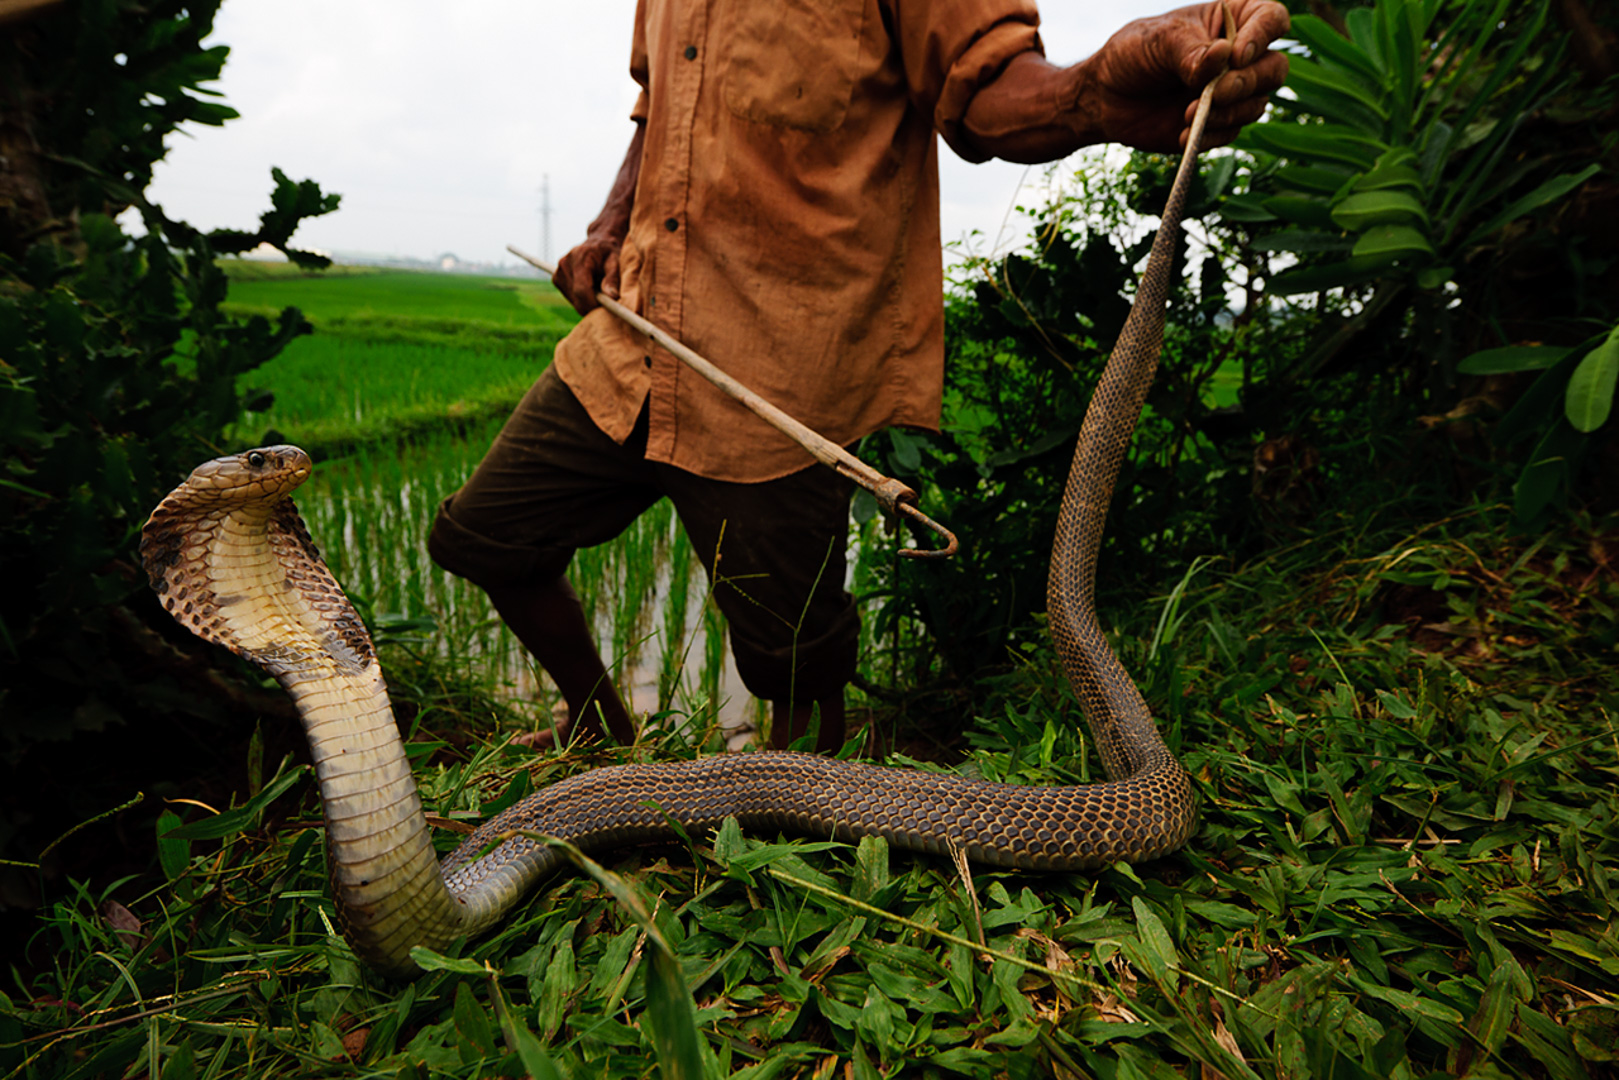 He keeps a few snakes for his family to eat and sells the rest to a local restaurant or an exporter. A cobra can bring a hundred dollars—a lot in rural Vietnam.